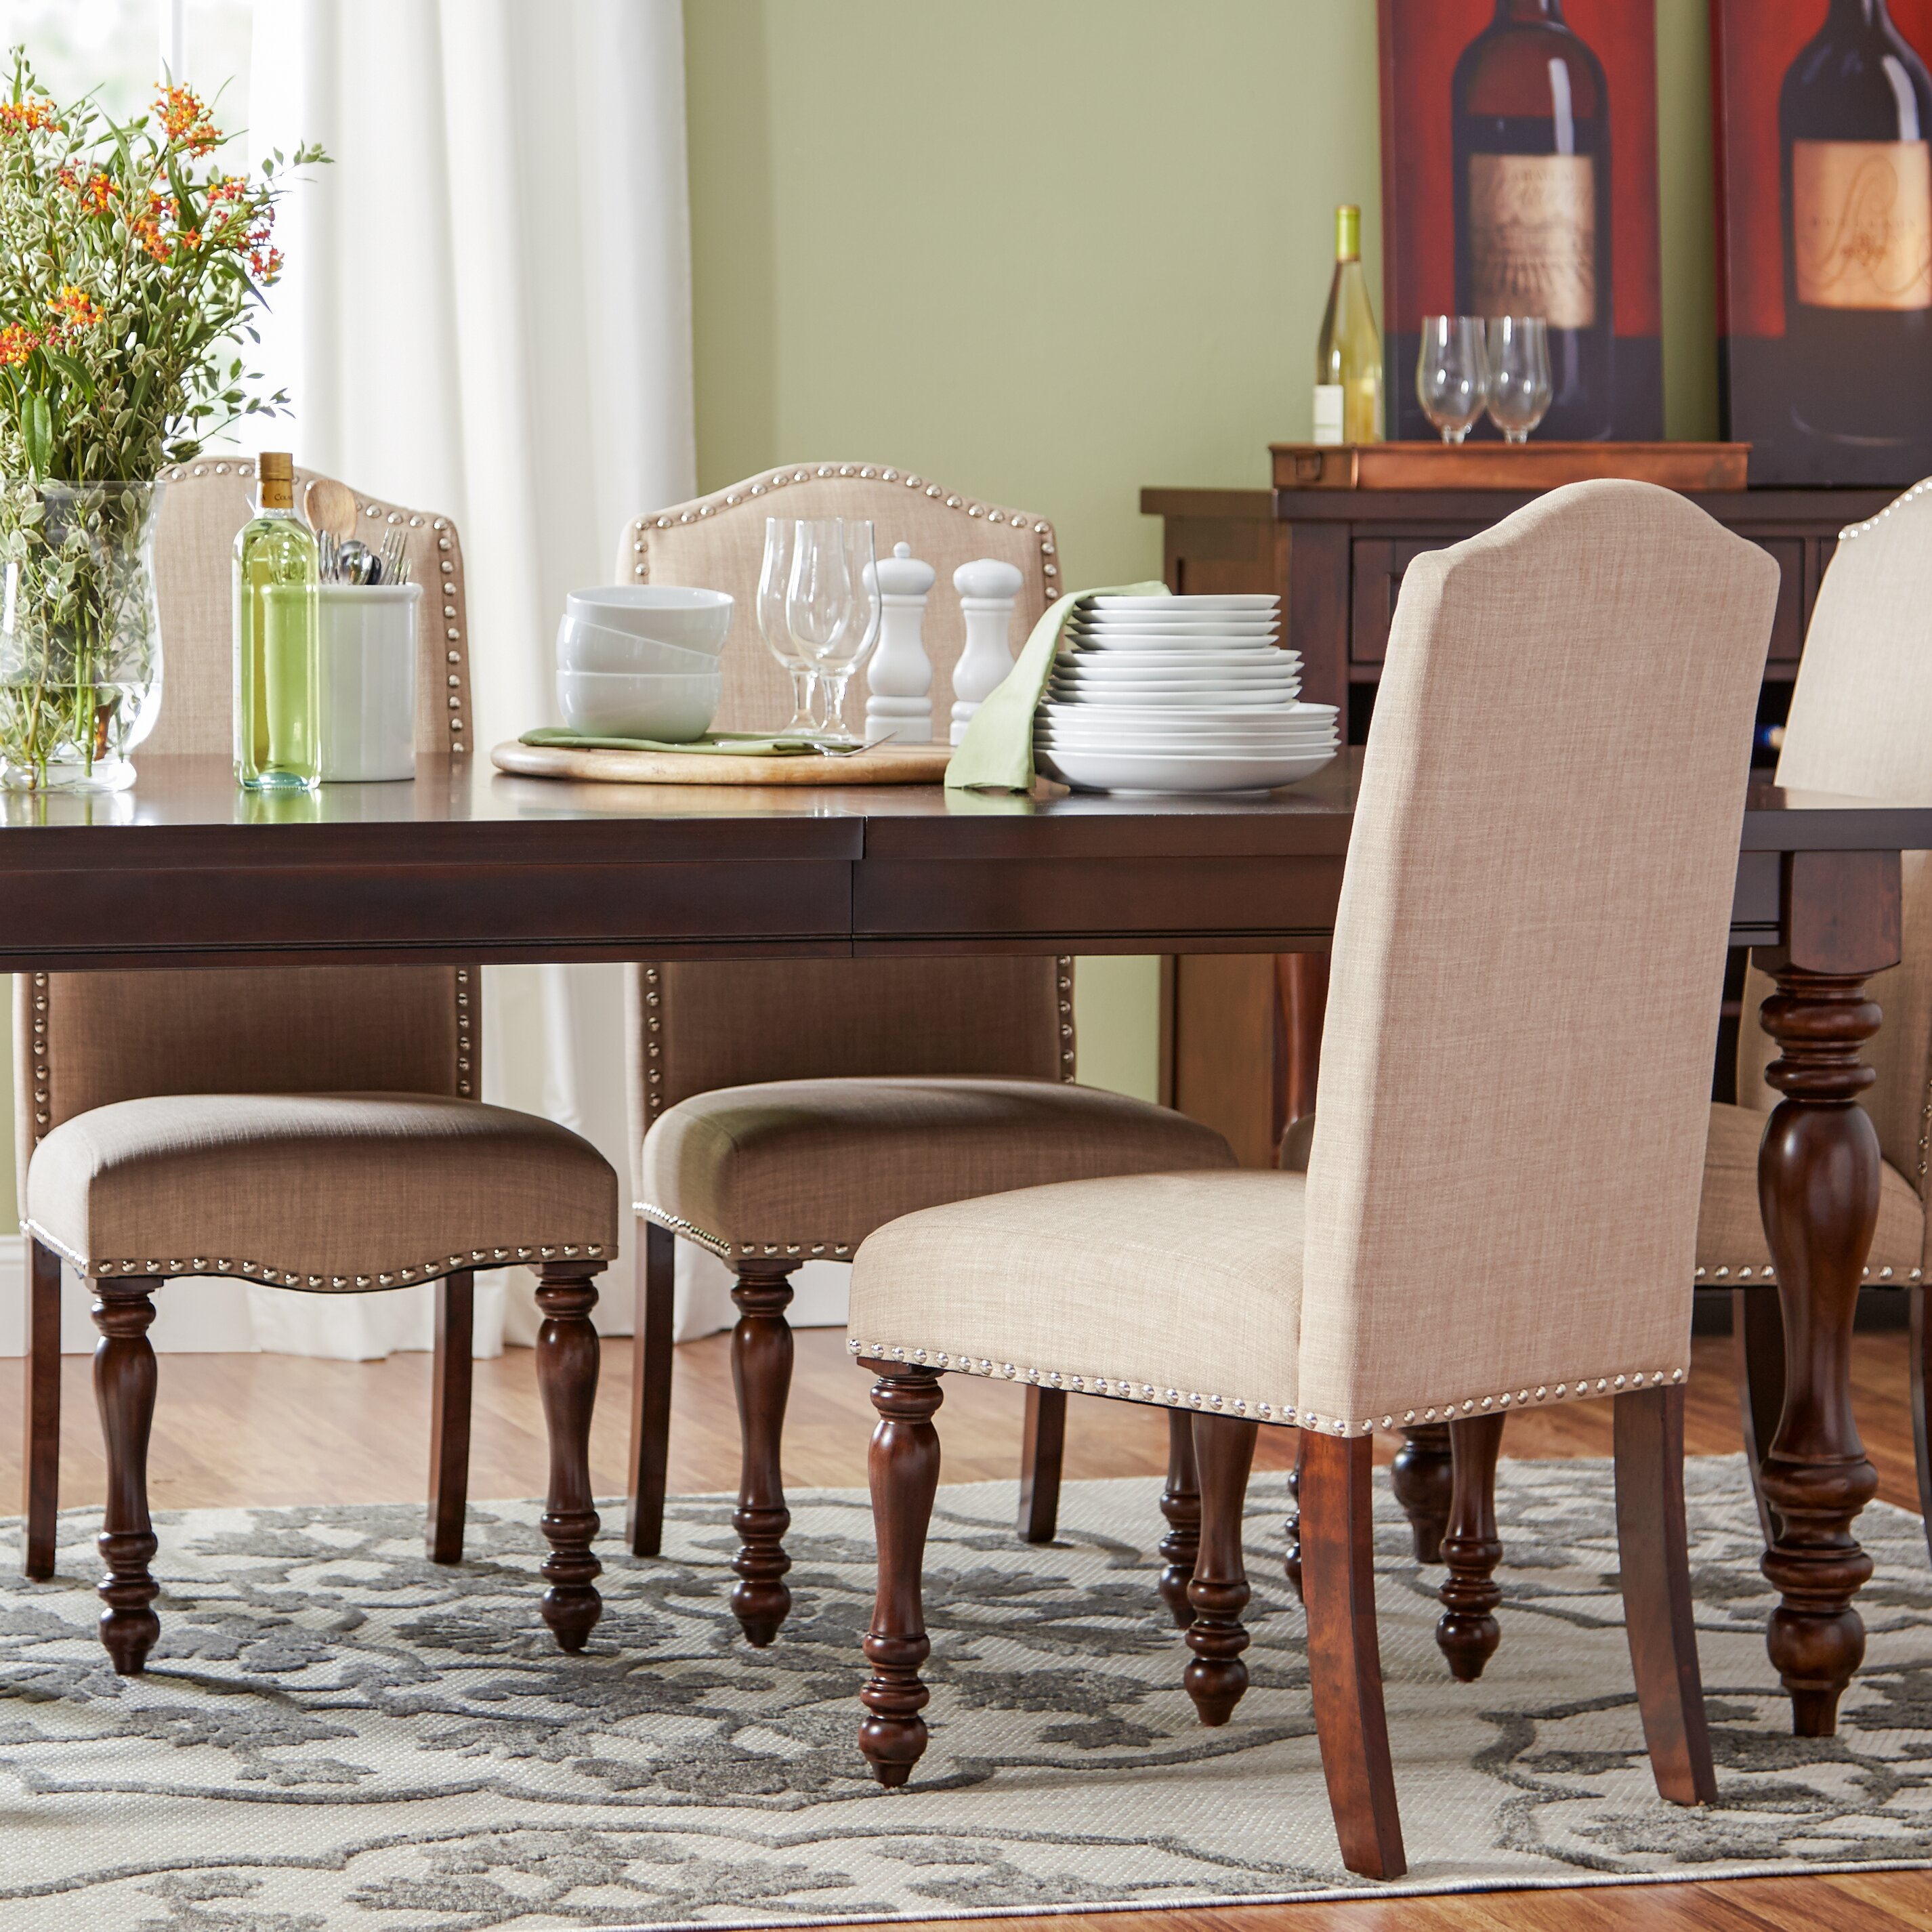 100 wayfair dining chairs | furniture stunning dining table glossy